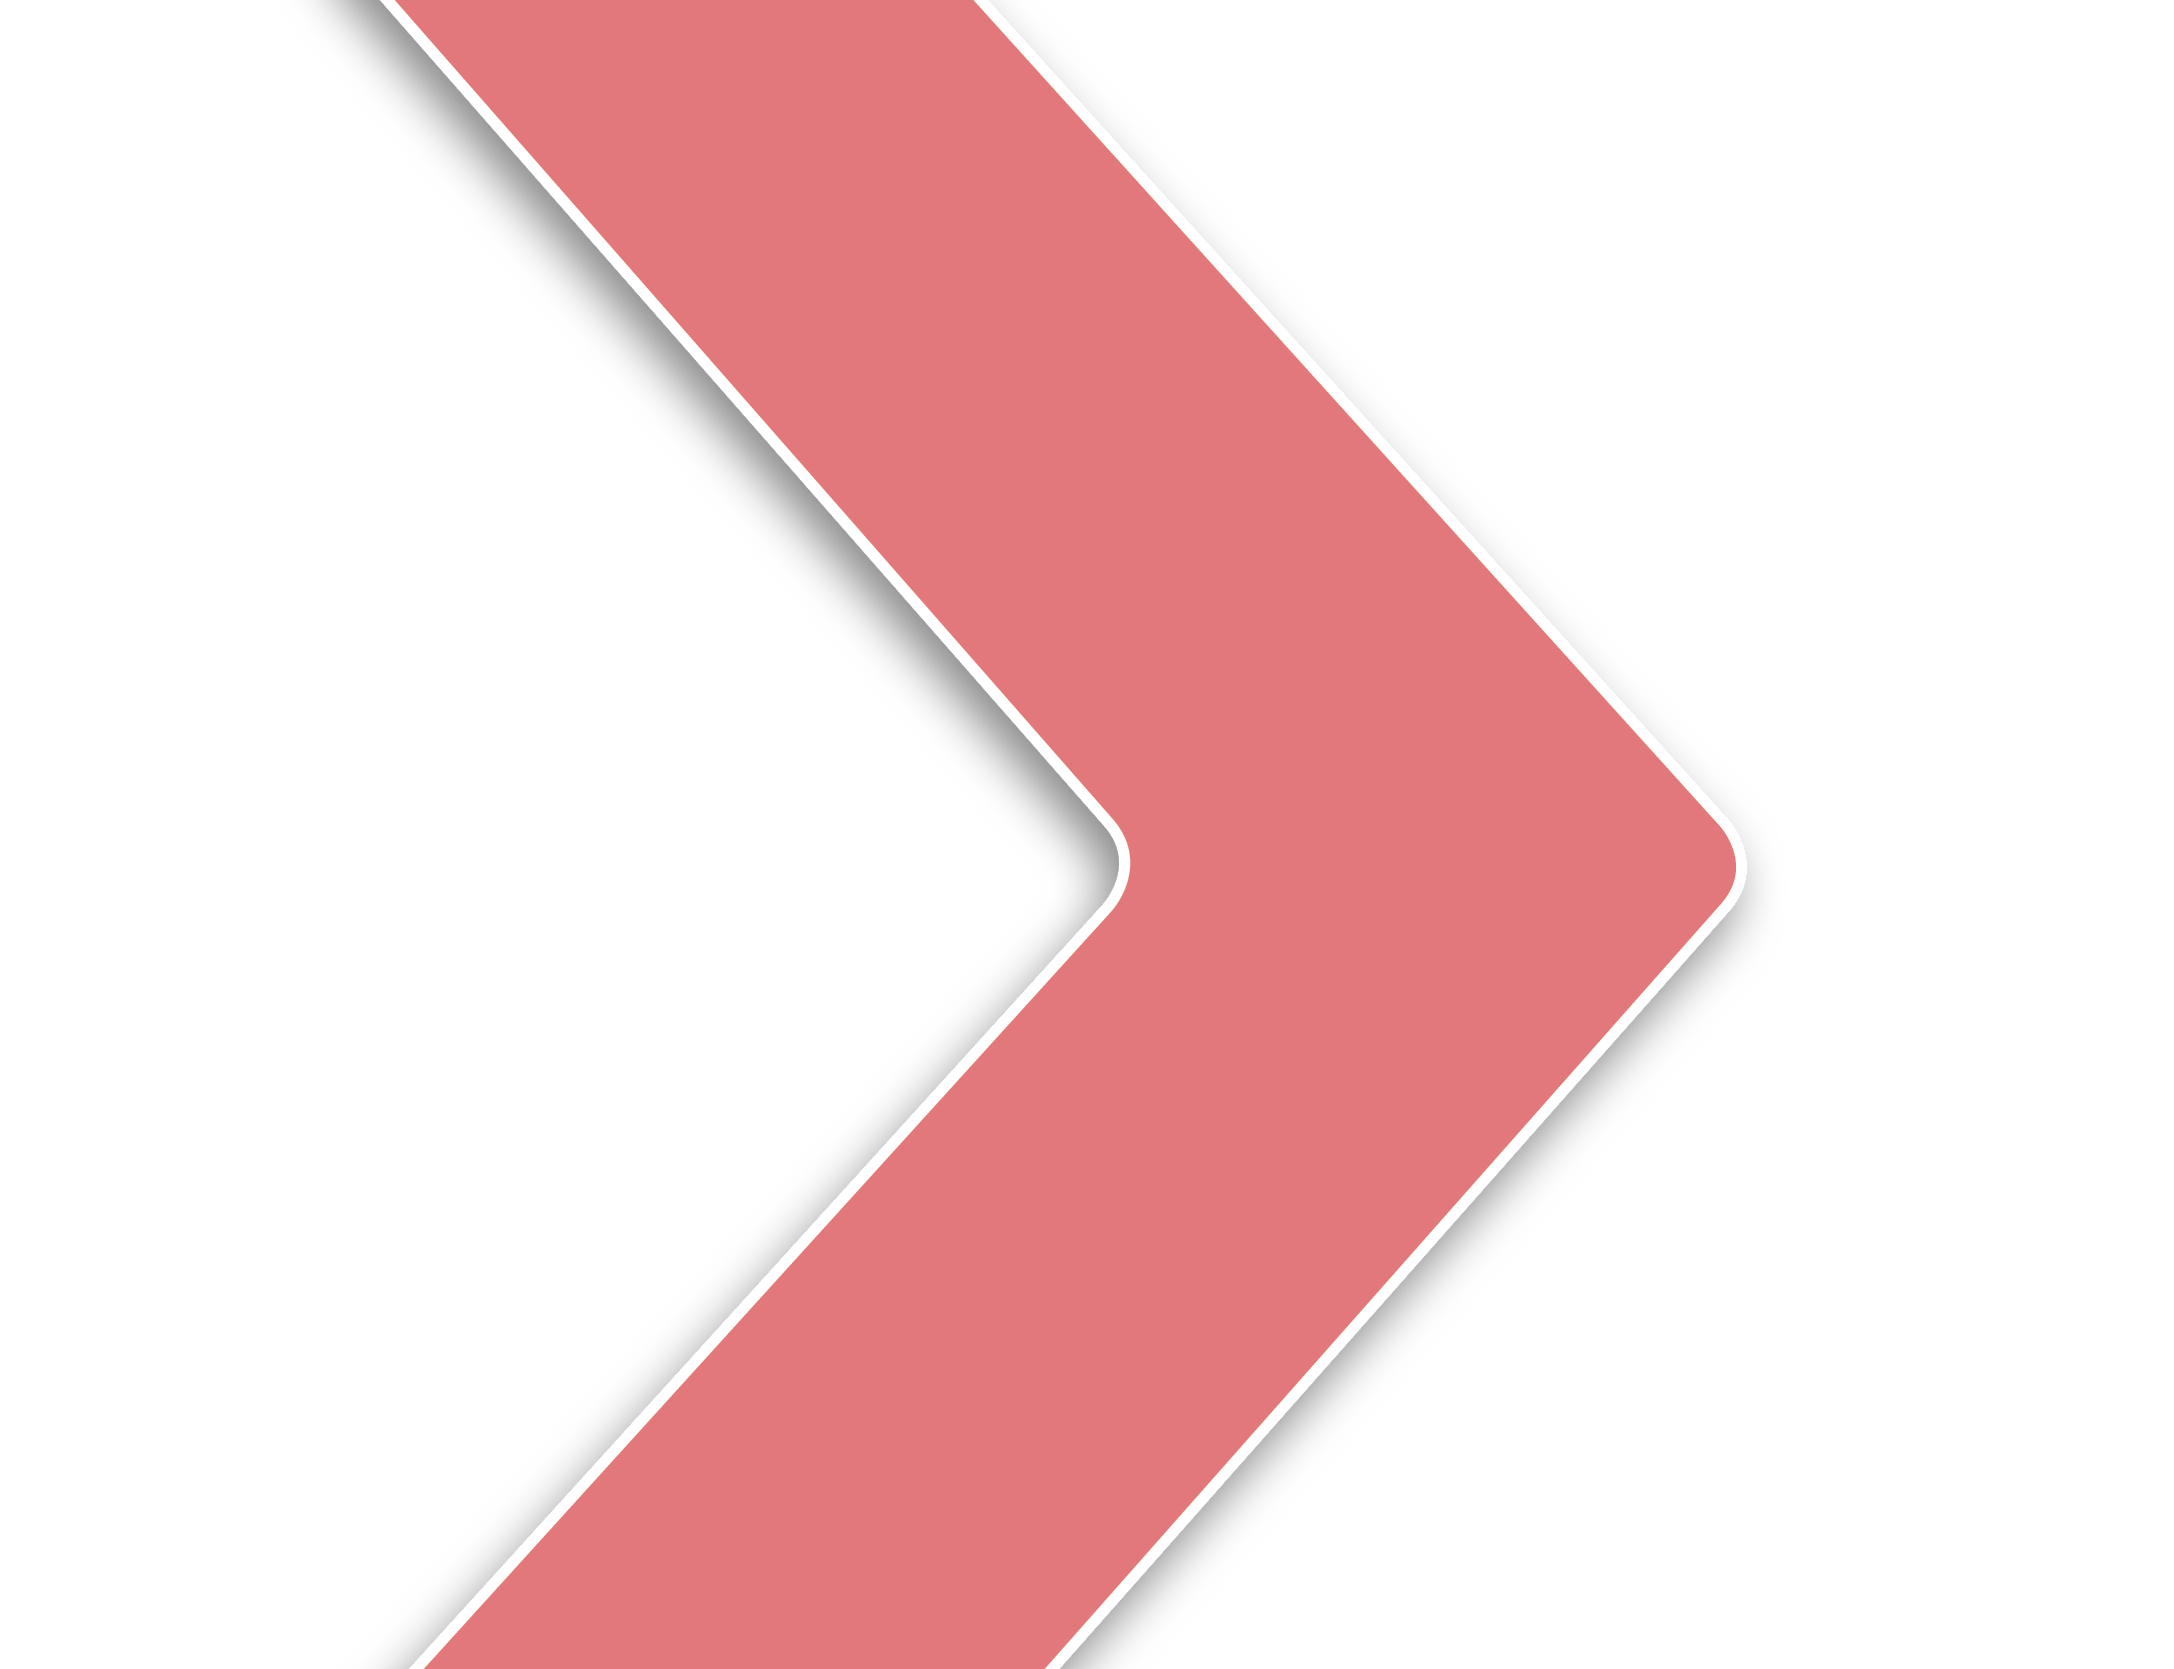 red-arrow-down